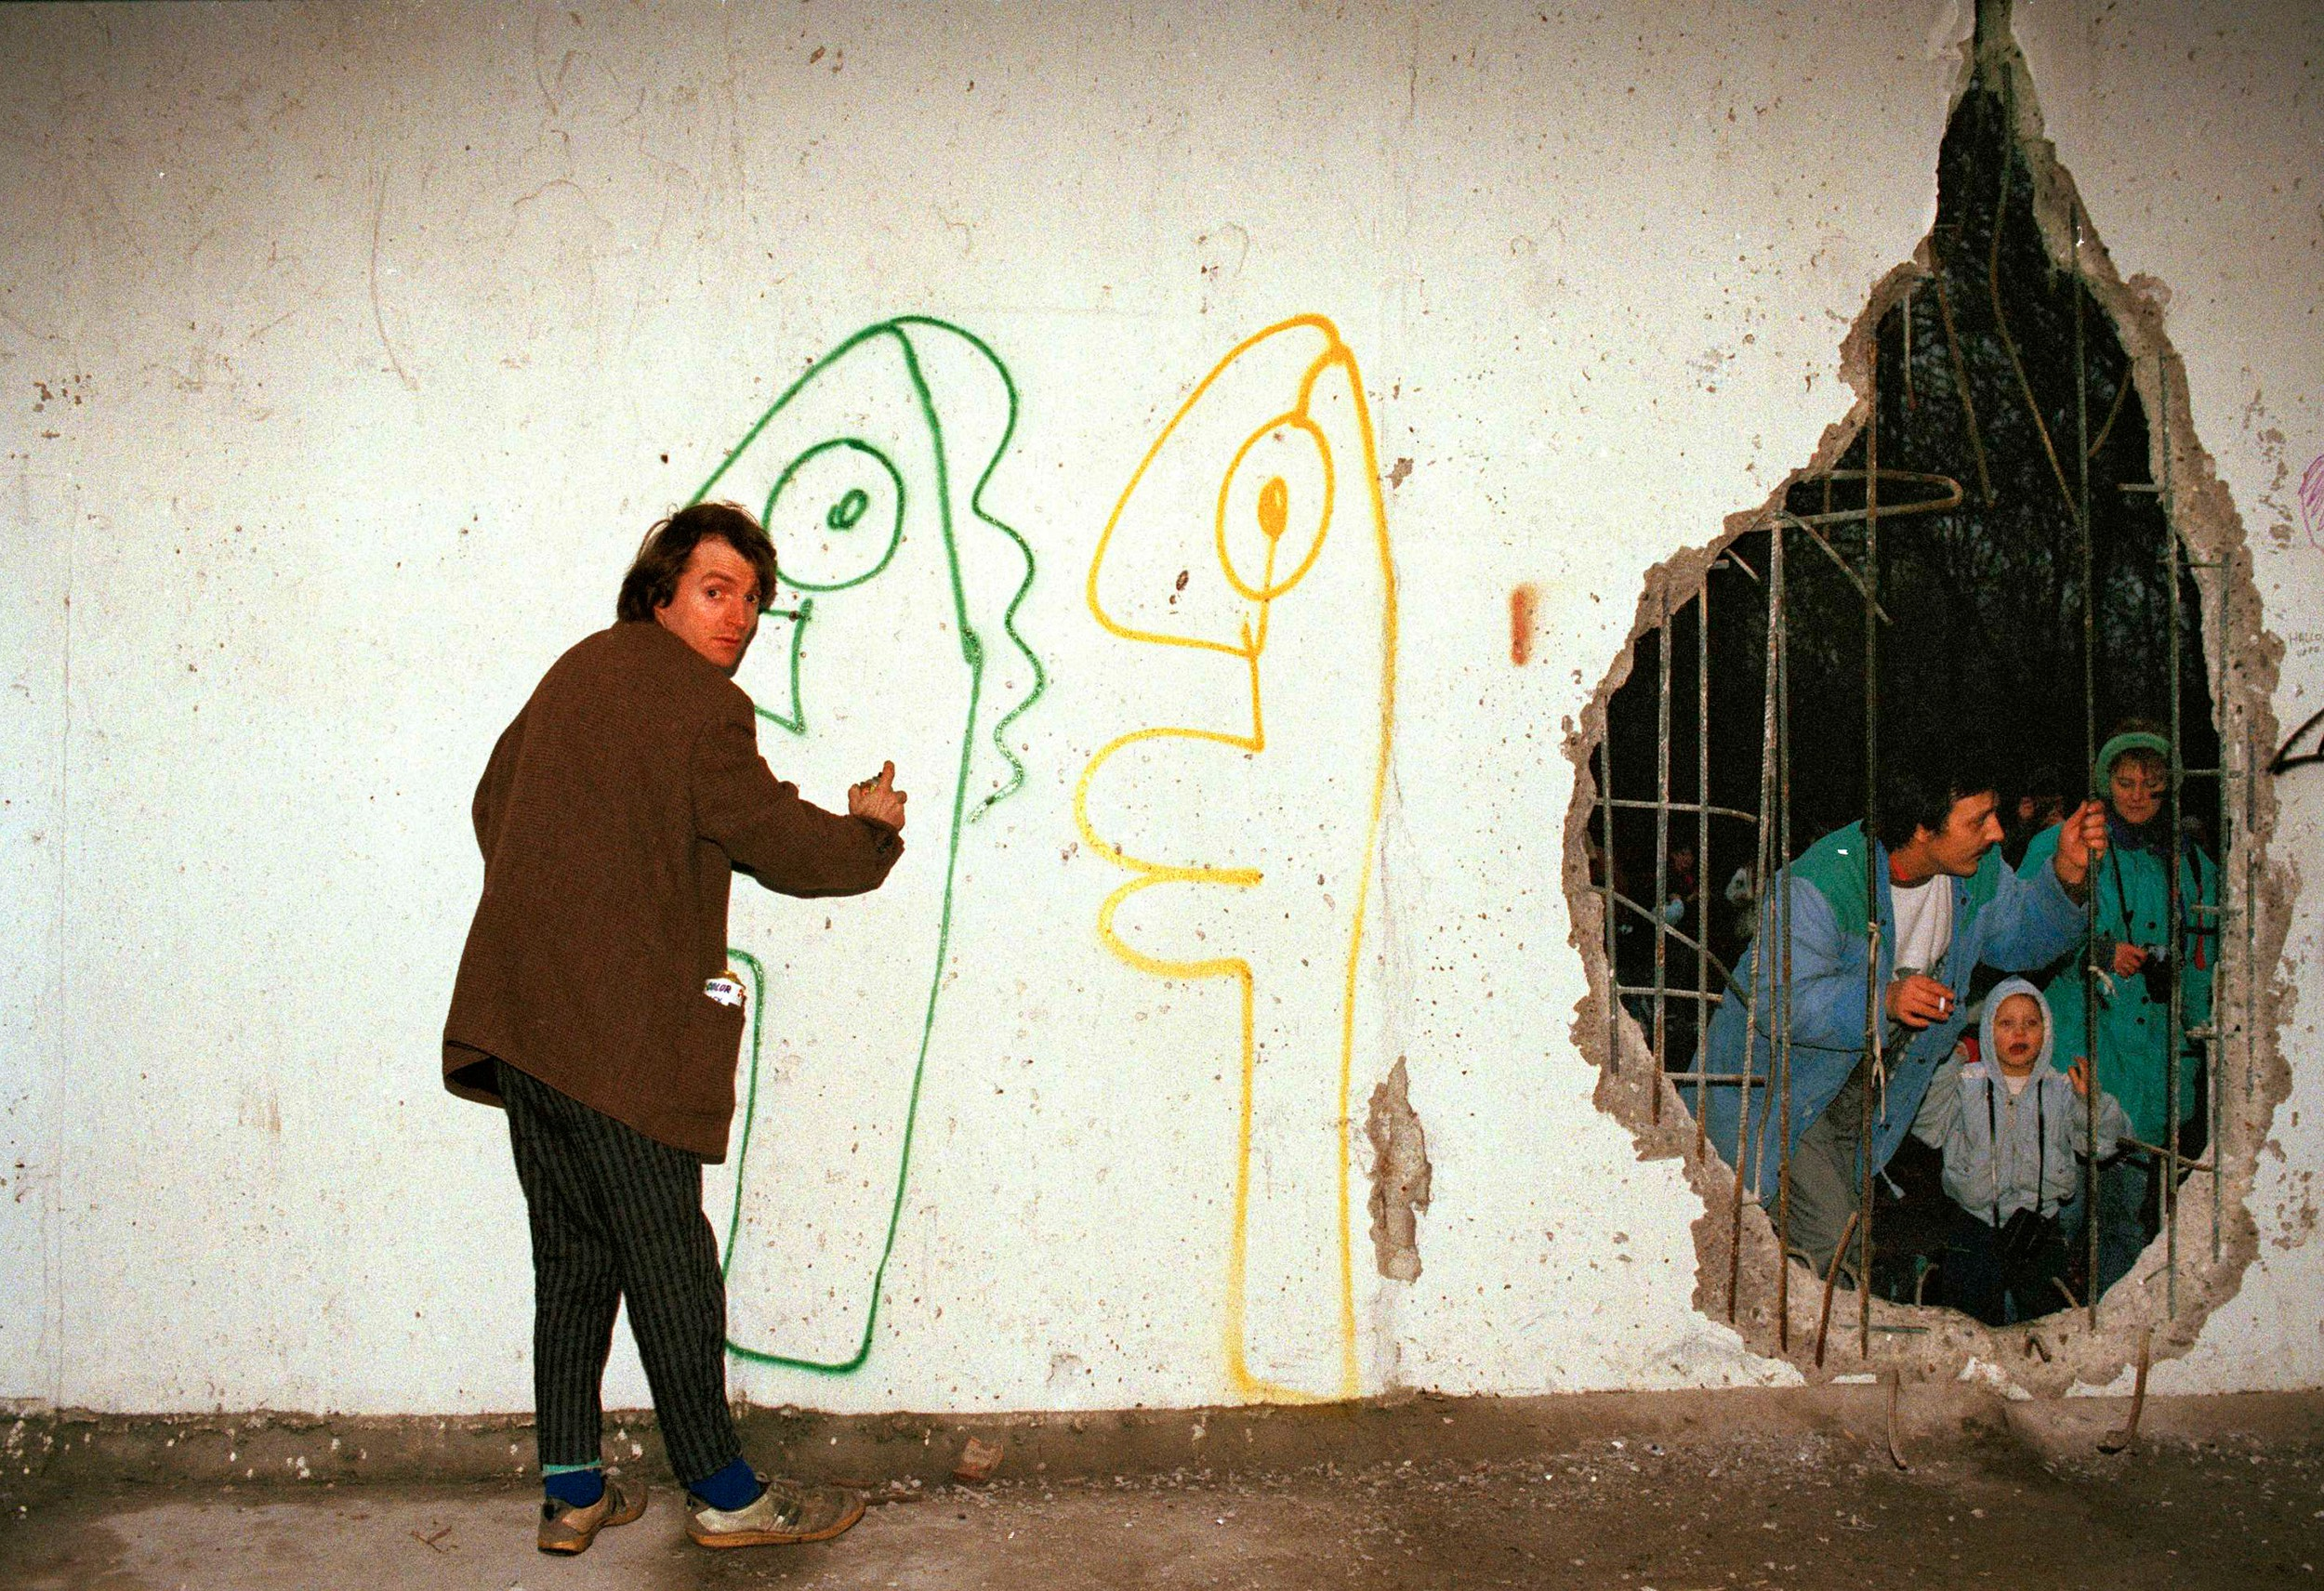 Thierry noir of west berlin sprays graffiti on the berlin wall in east berlin near the brandenburg gate jan 13 1990 before he could finish the job